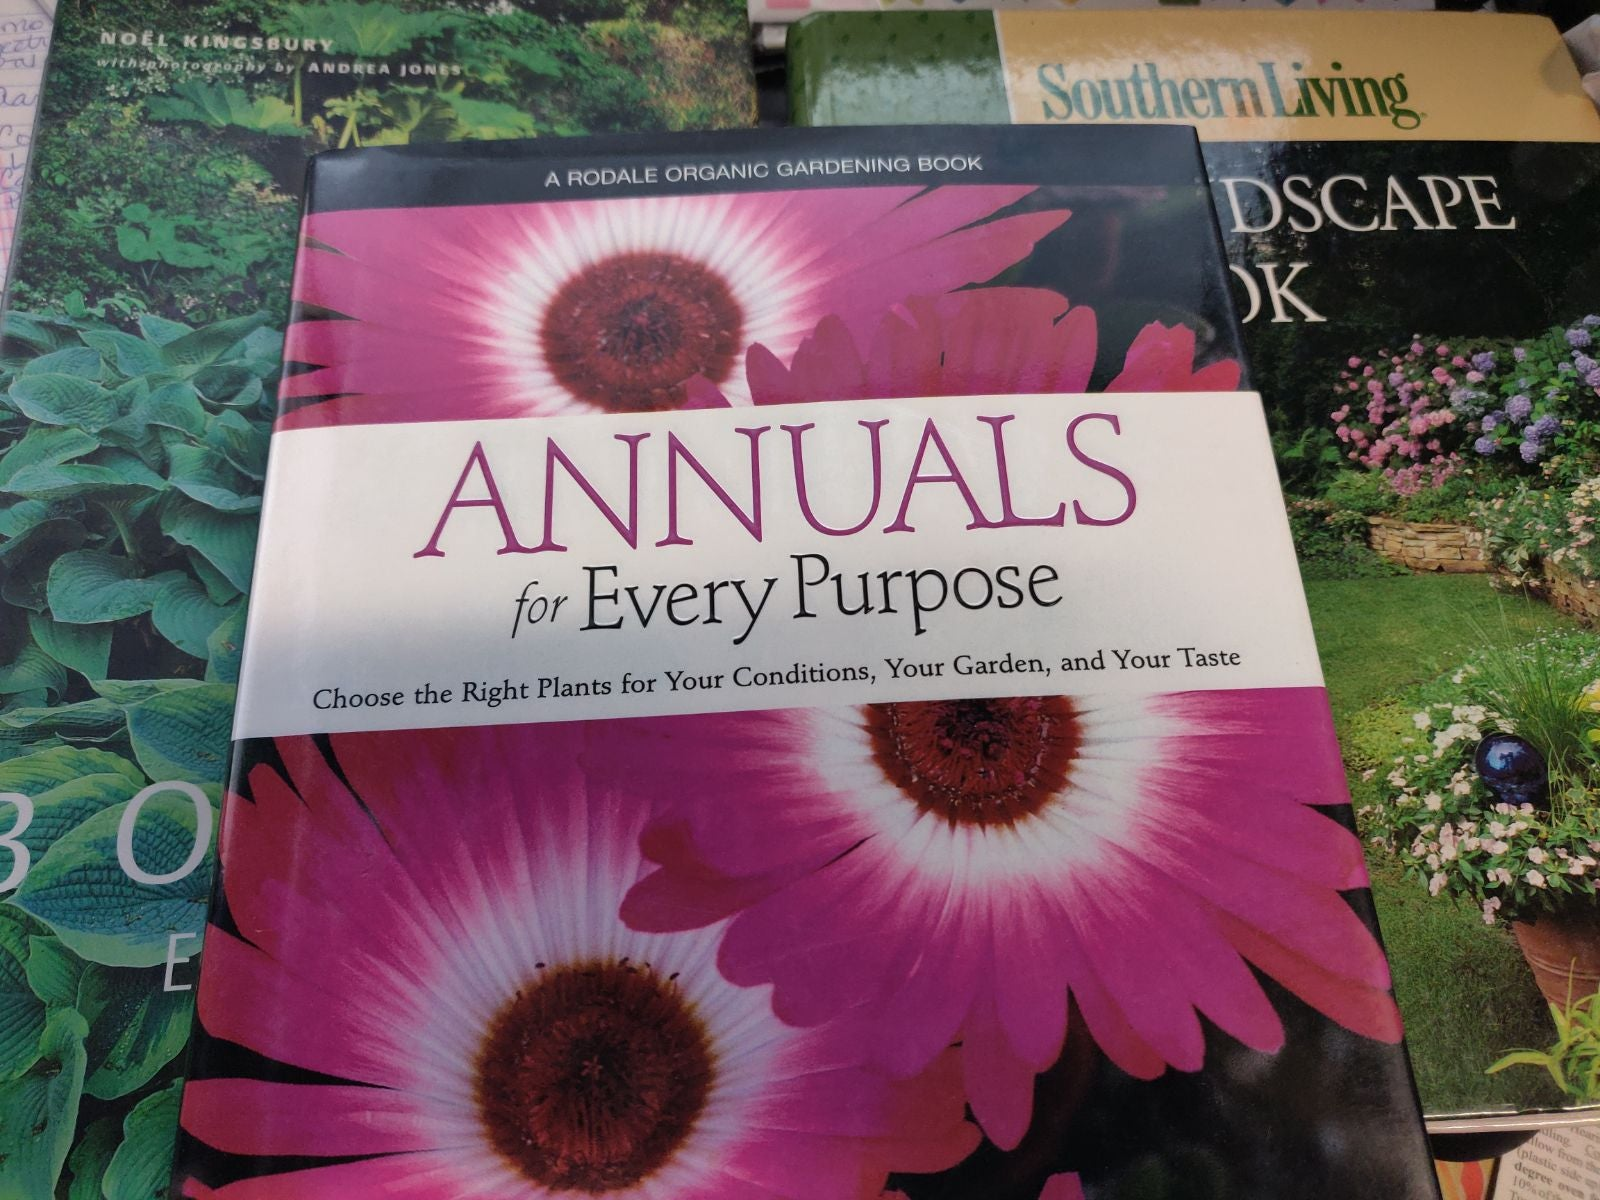 Plants/landscaping books